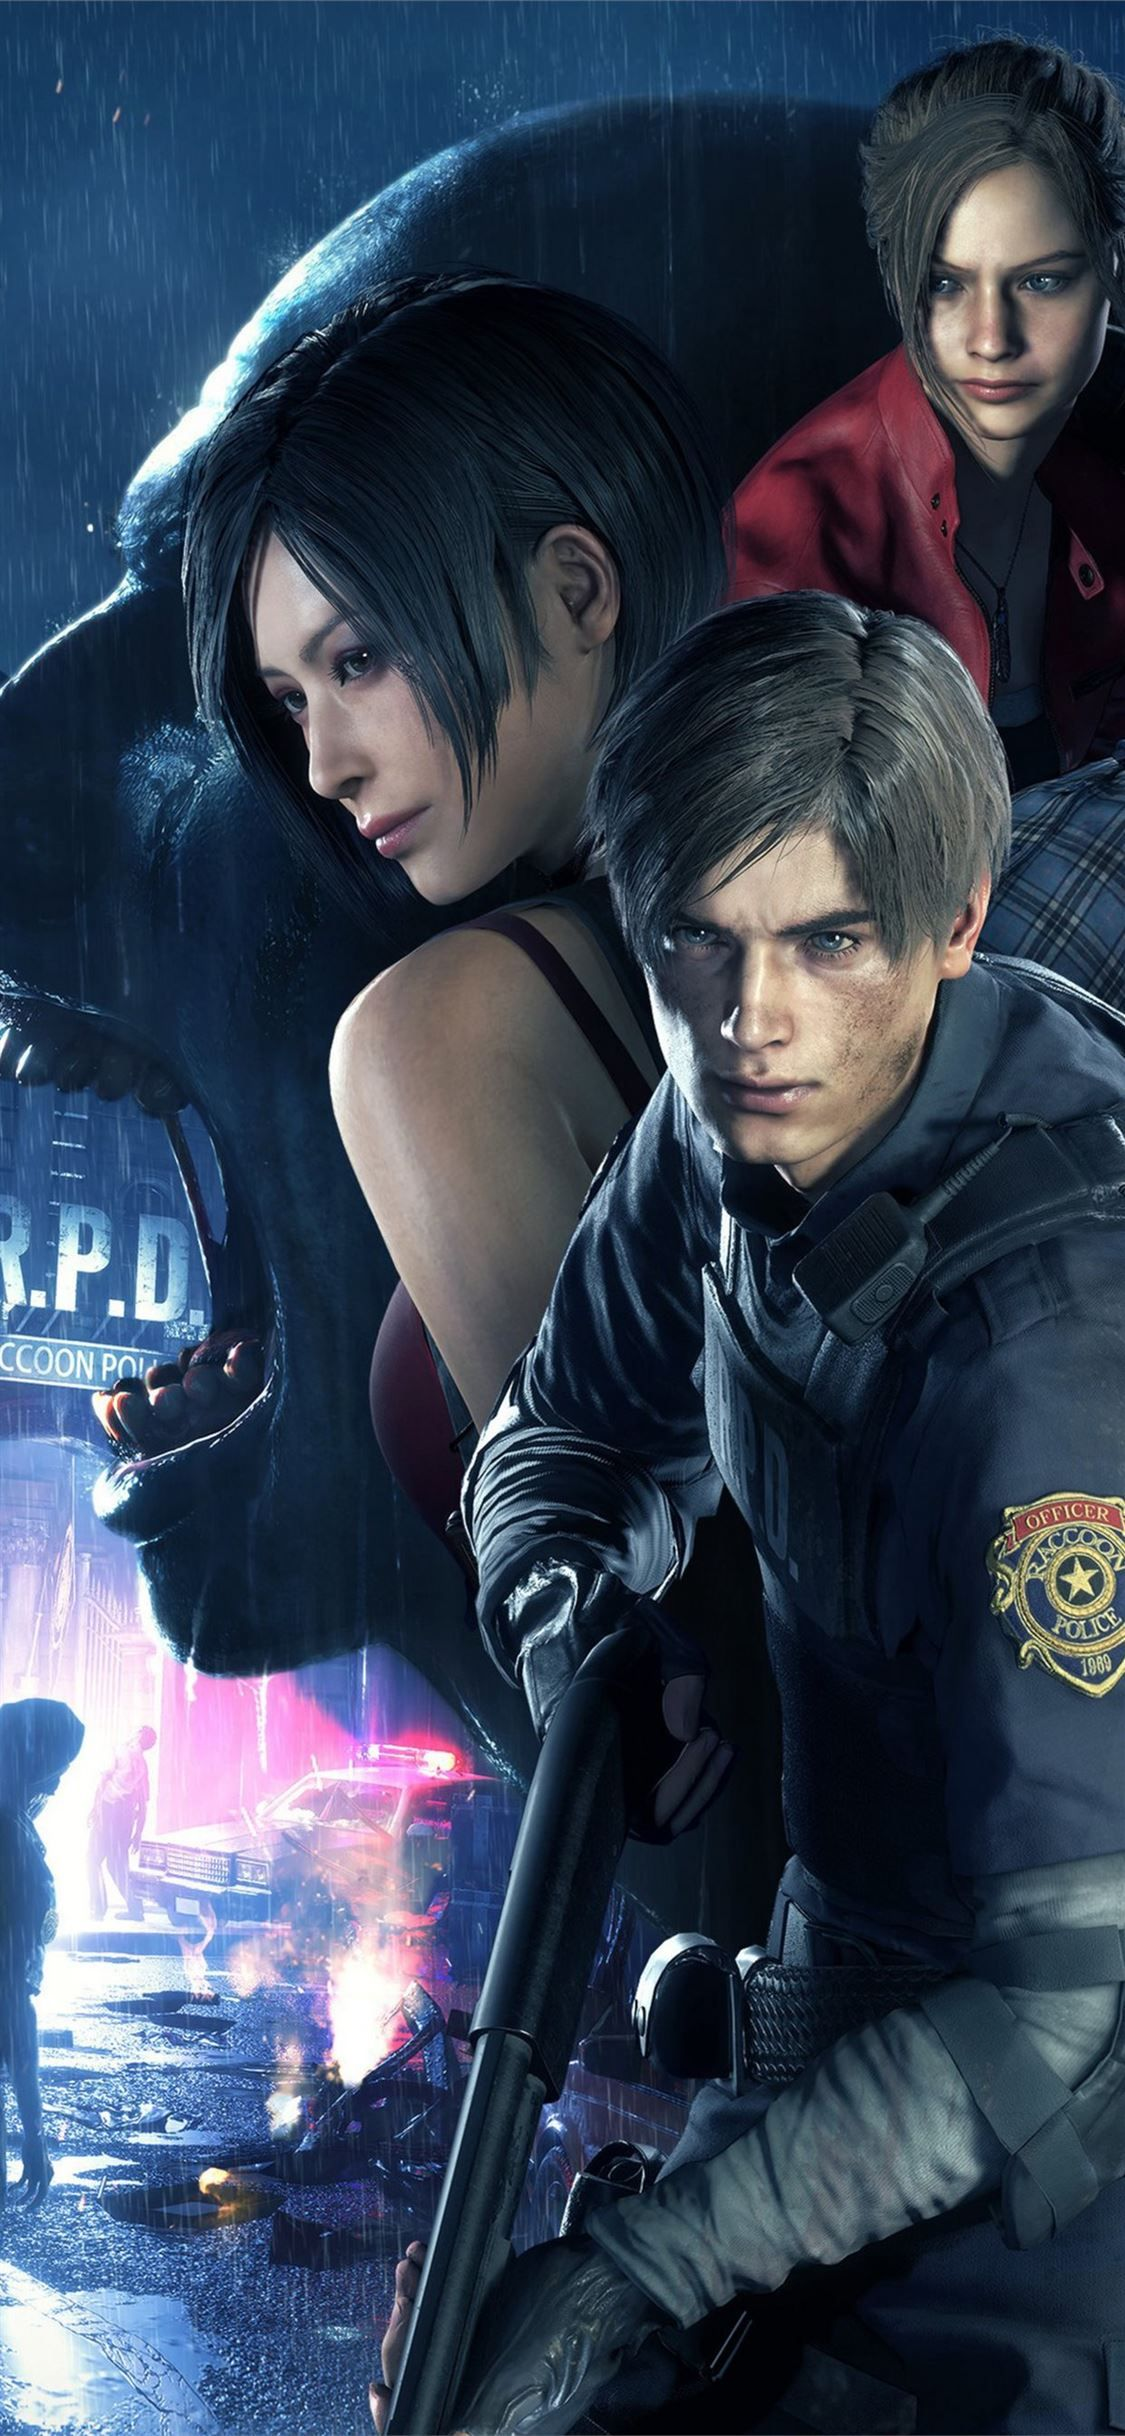 Resident Evil 2 4k Residentevil2 2020games Games 4k Iphone11wallpaper In 2020 Resident Evil Resident Evil Game Resident Evil 5